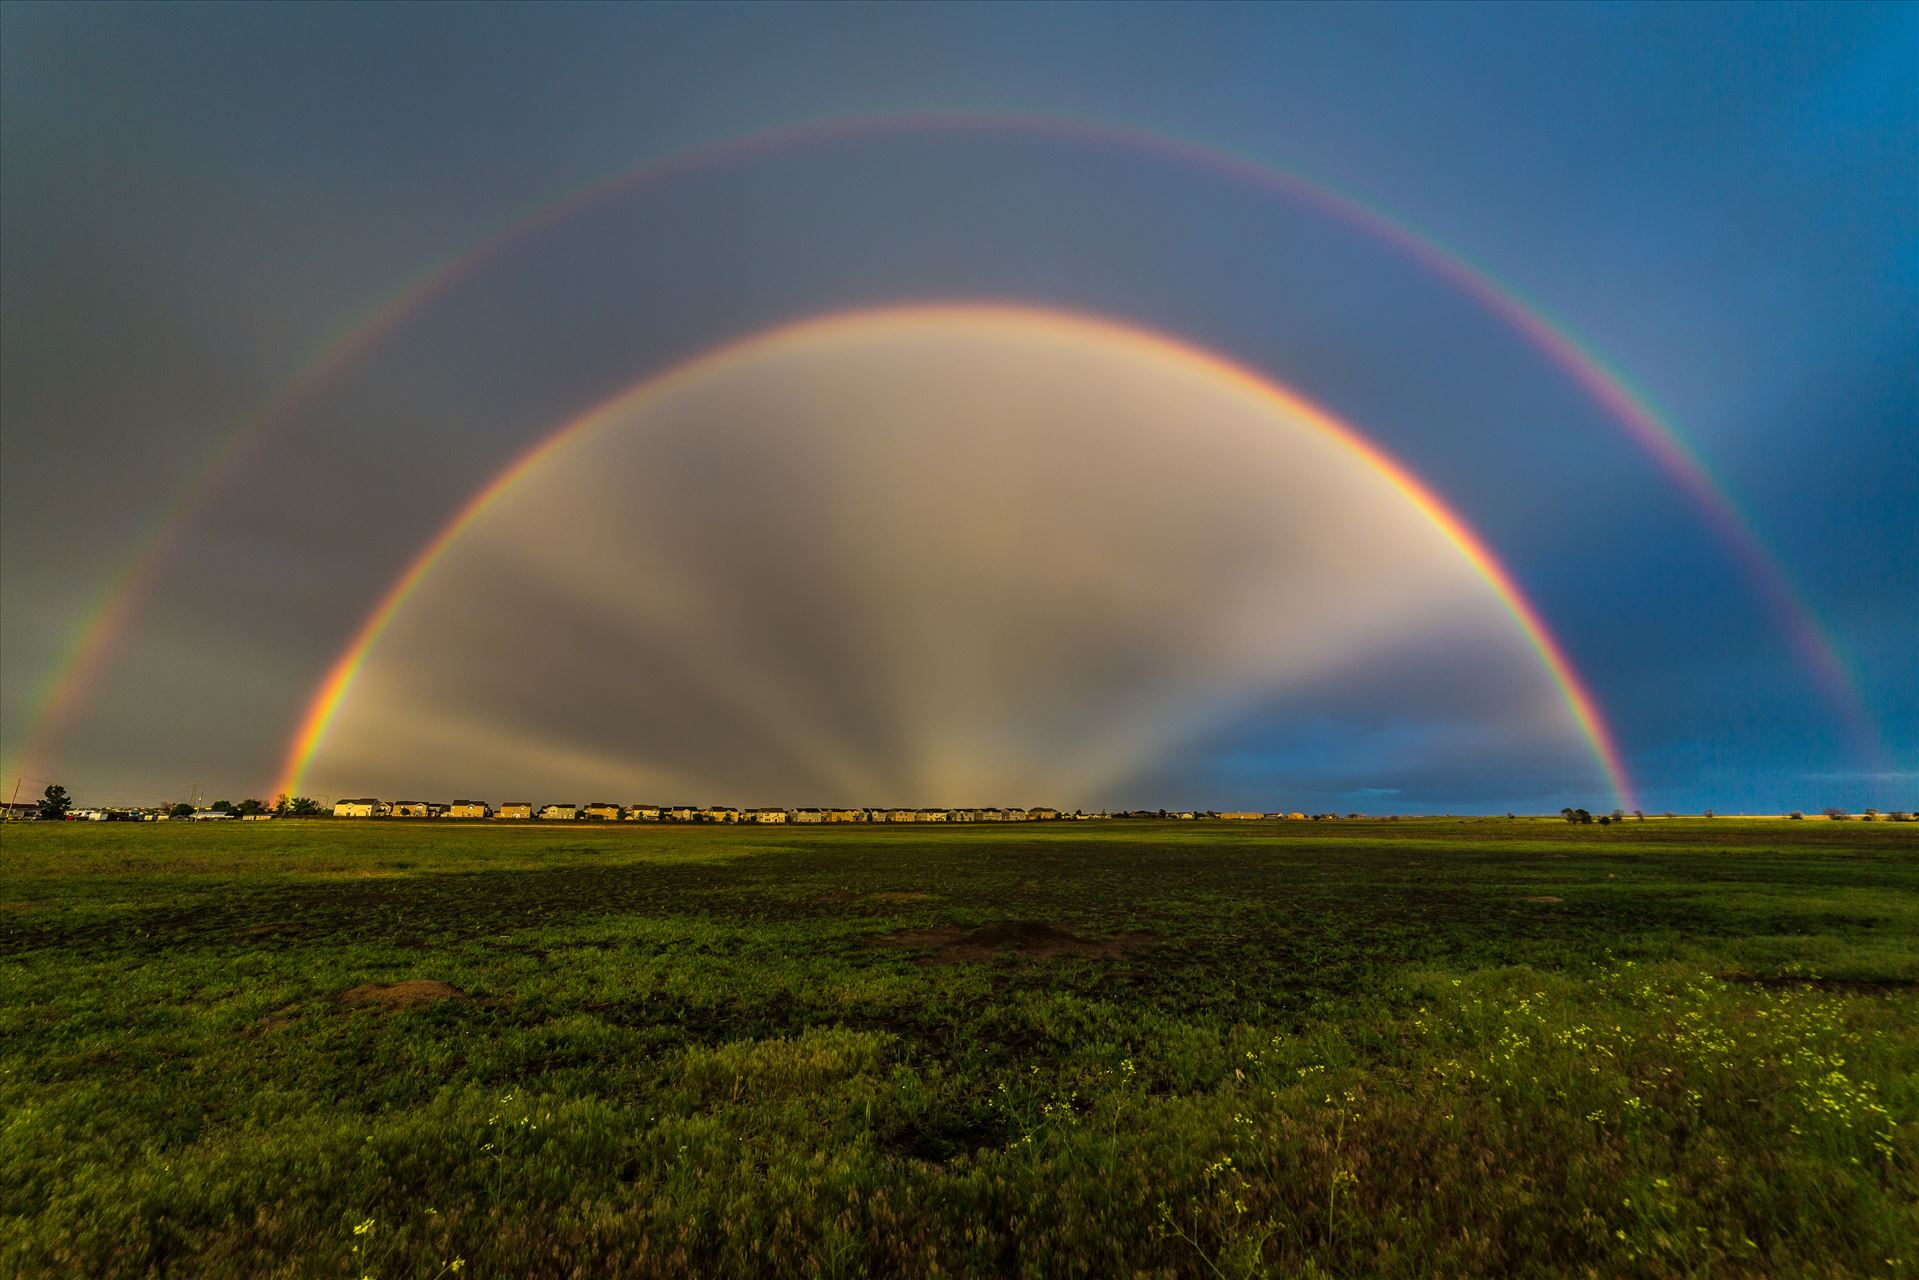 Double Rainbow with Anti-Crepuscular Rays - After a hard rain and a bit of hail, anti-crepuscular rays appear to cast from the center of a double rainbow, near Reunion, Colorado. by D Scott Smith